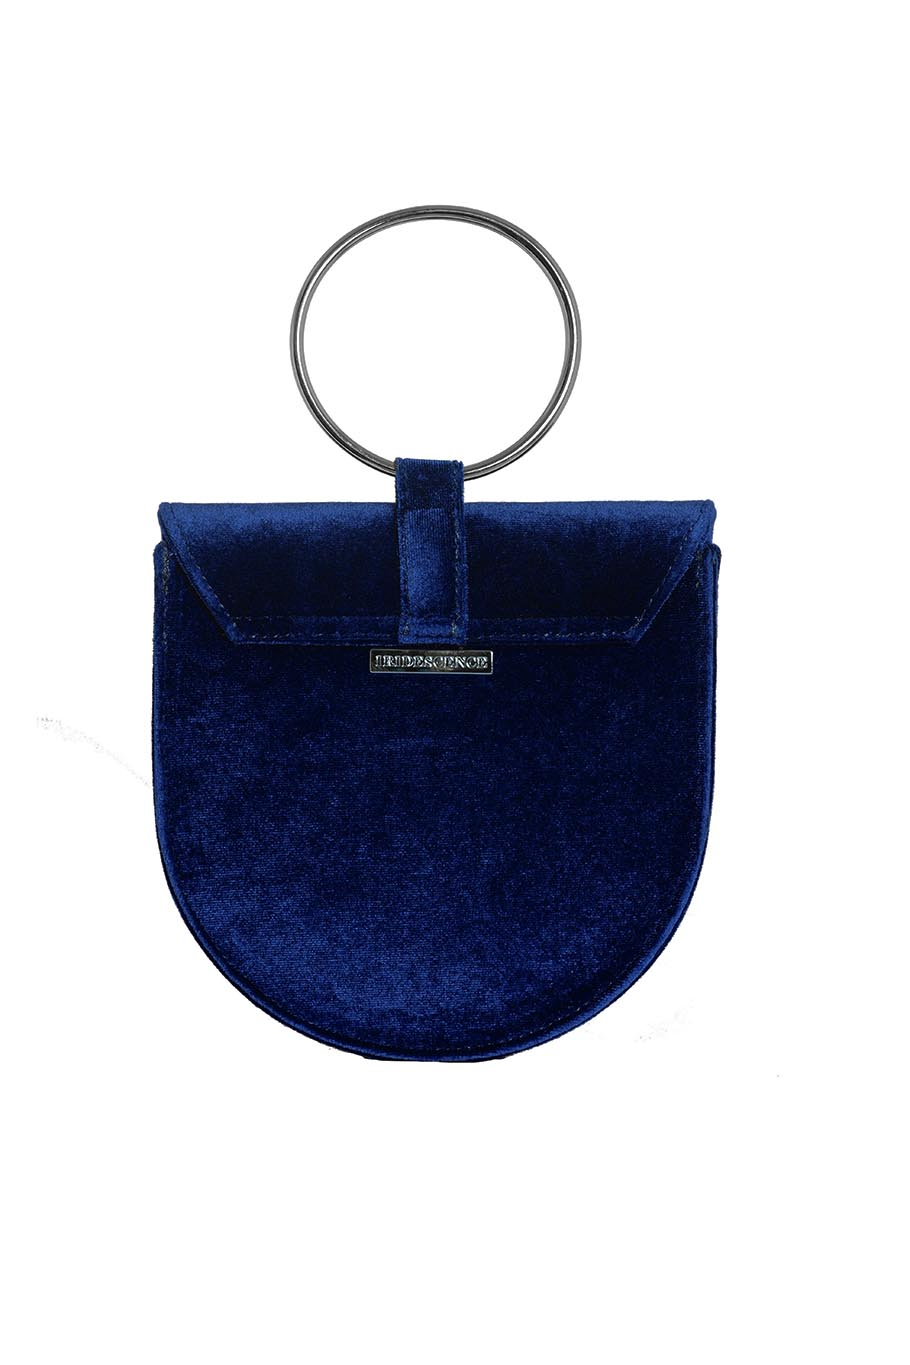 O-Ring bag Navy